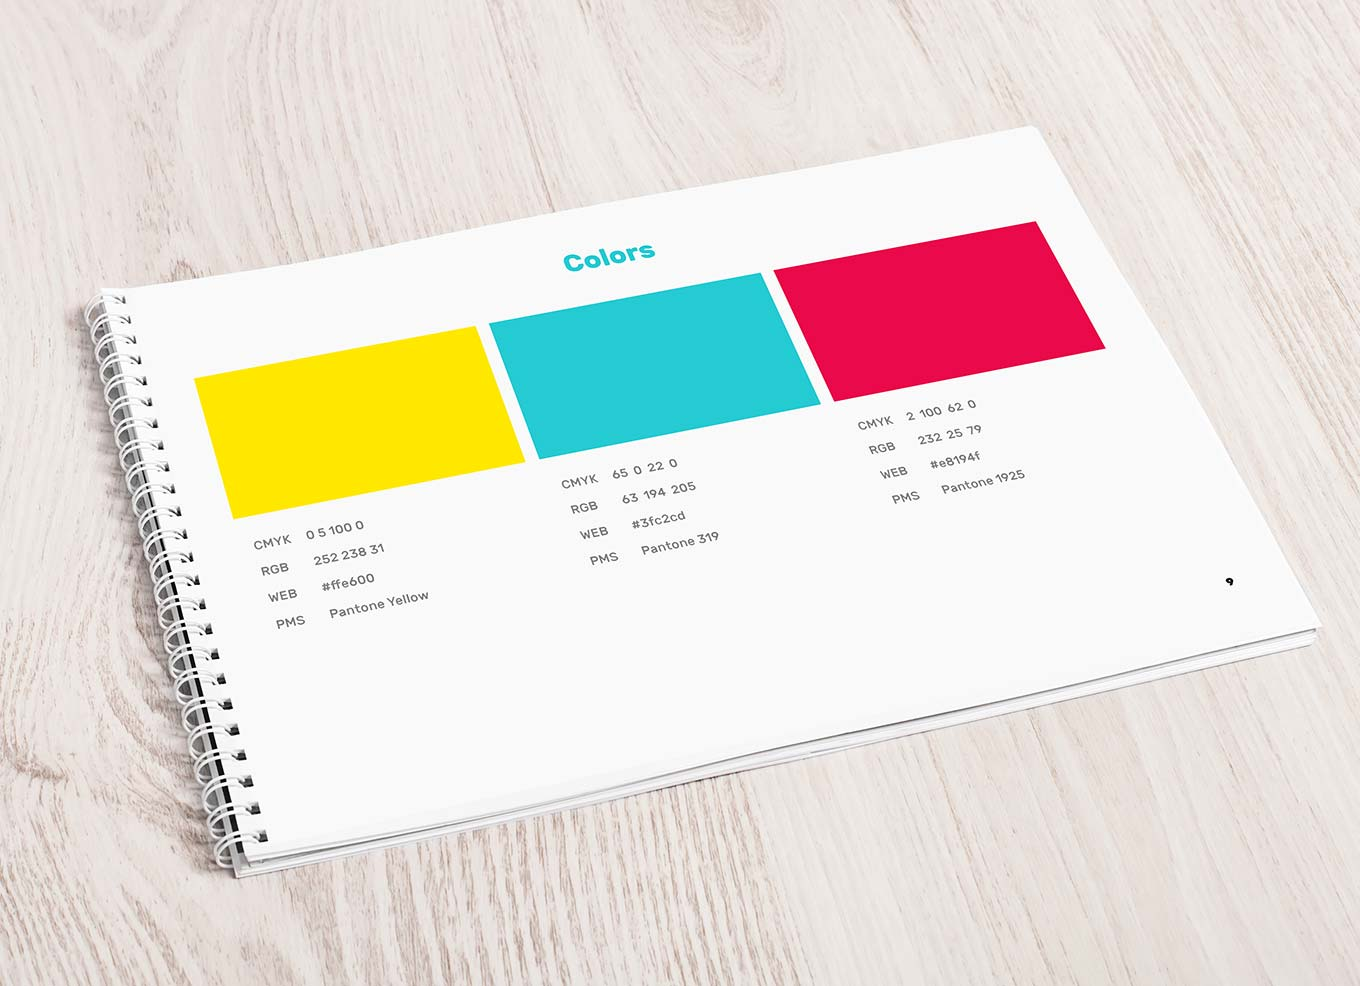 Detail of the colors page of the Good Lemon branding guidelines